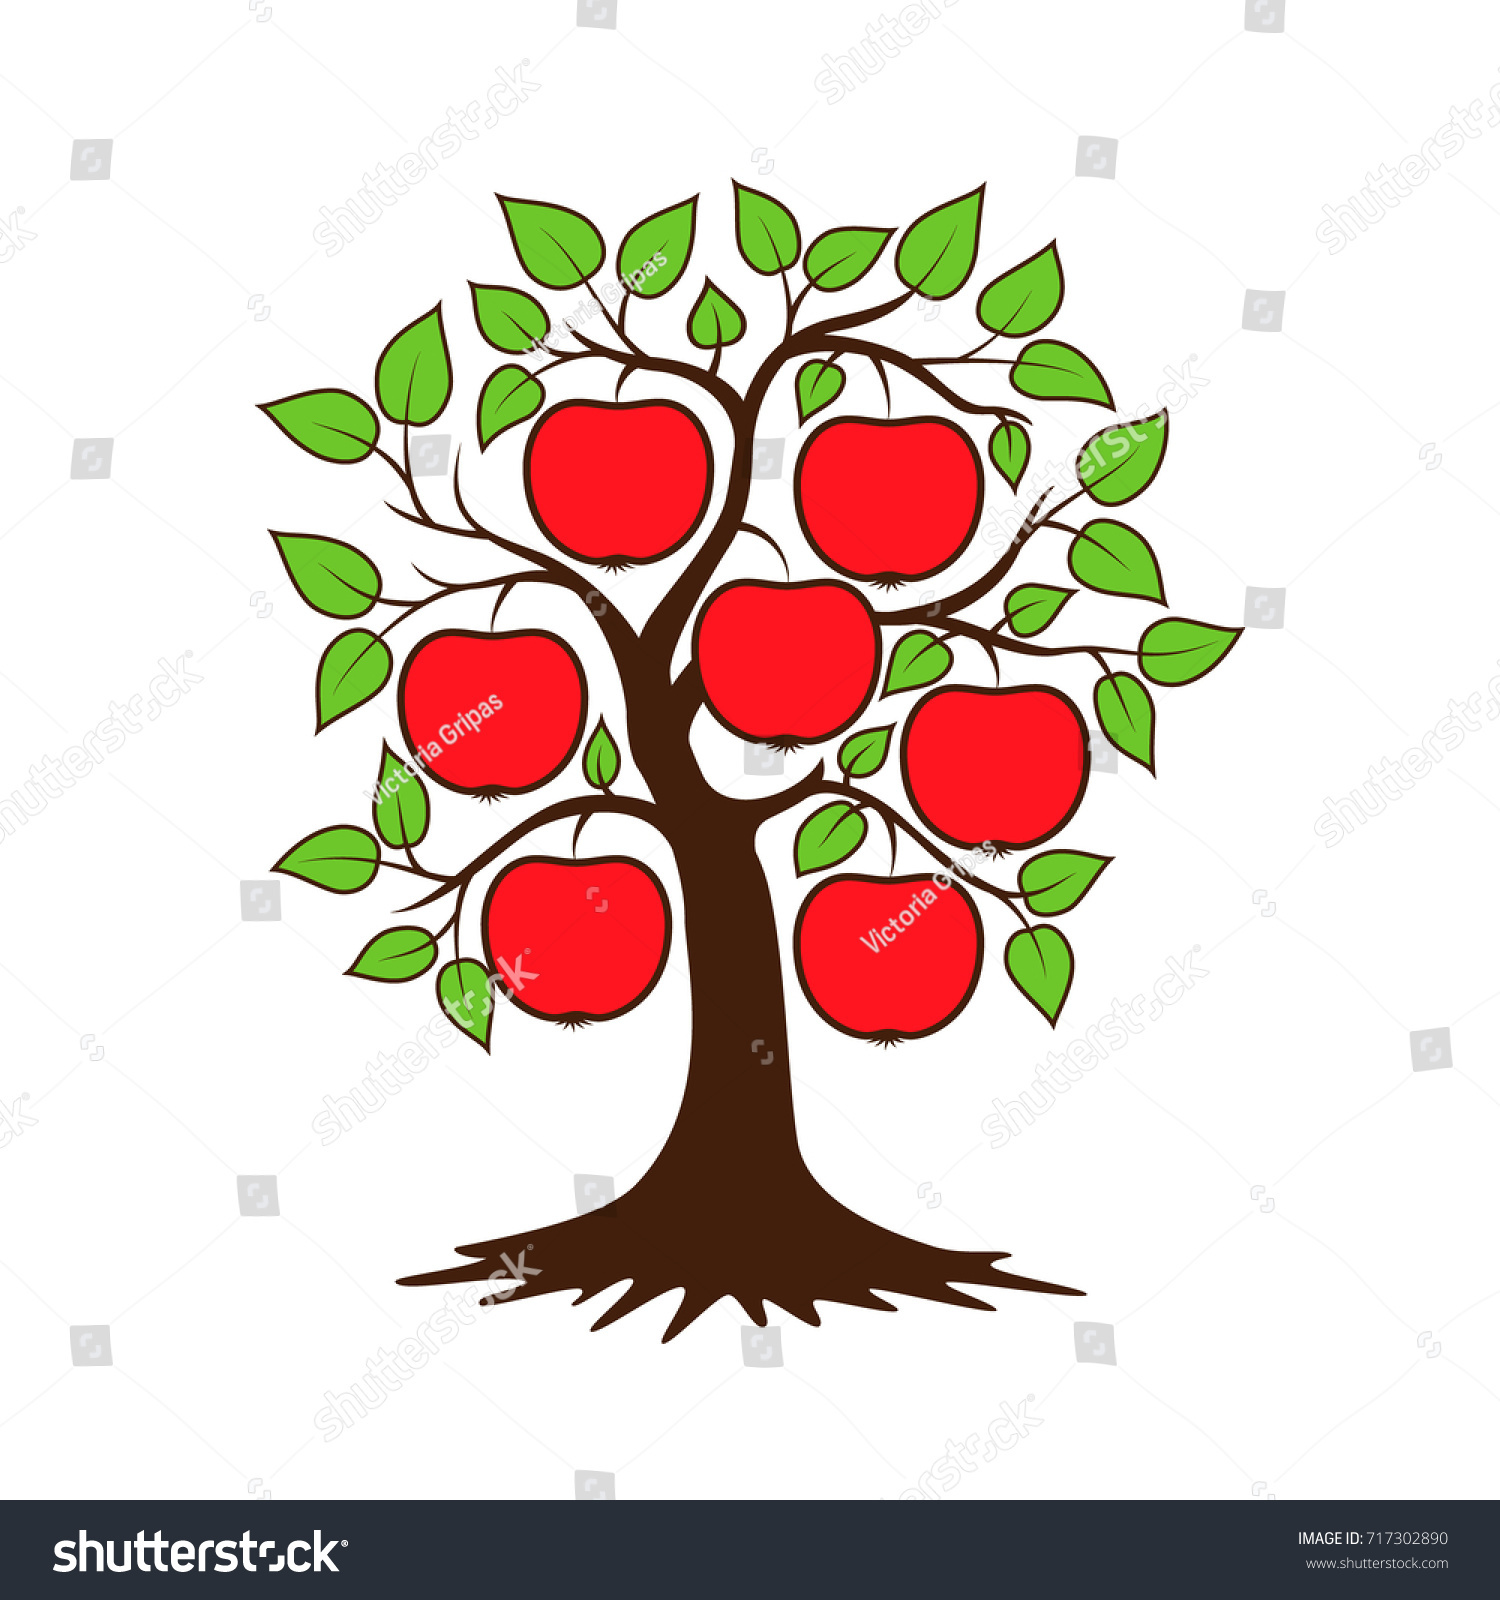 Apple Tree Vector Illustration Posters Wall Stock Vector 717302890 ...